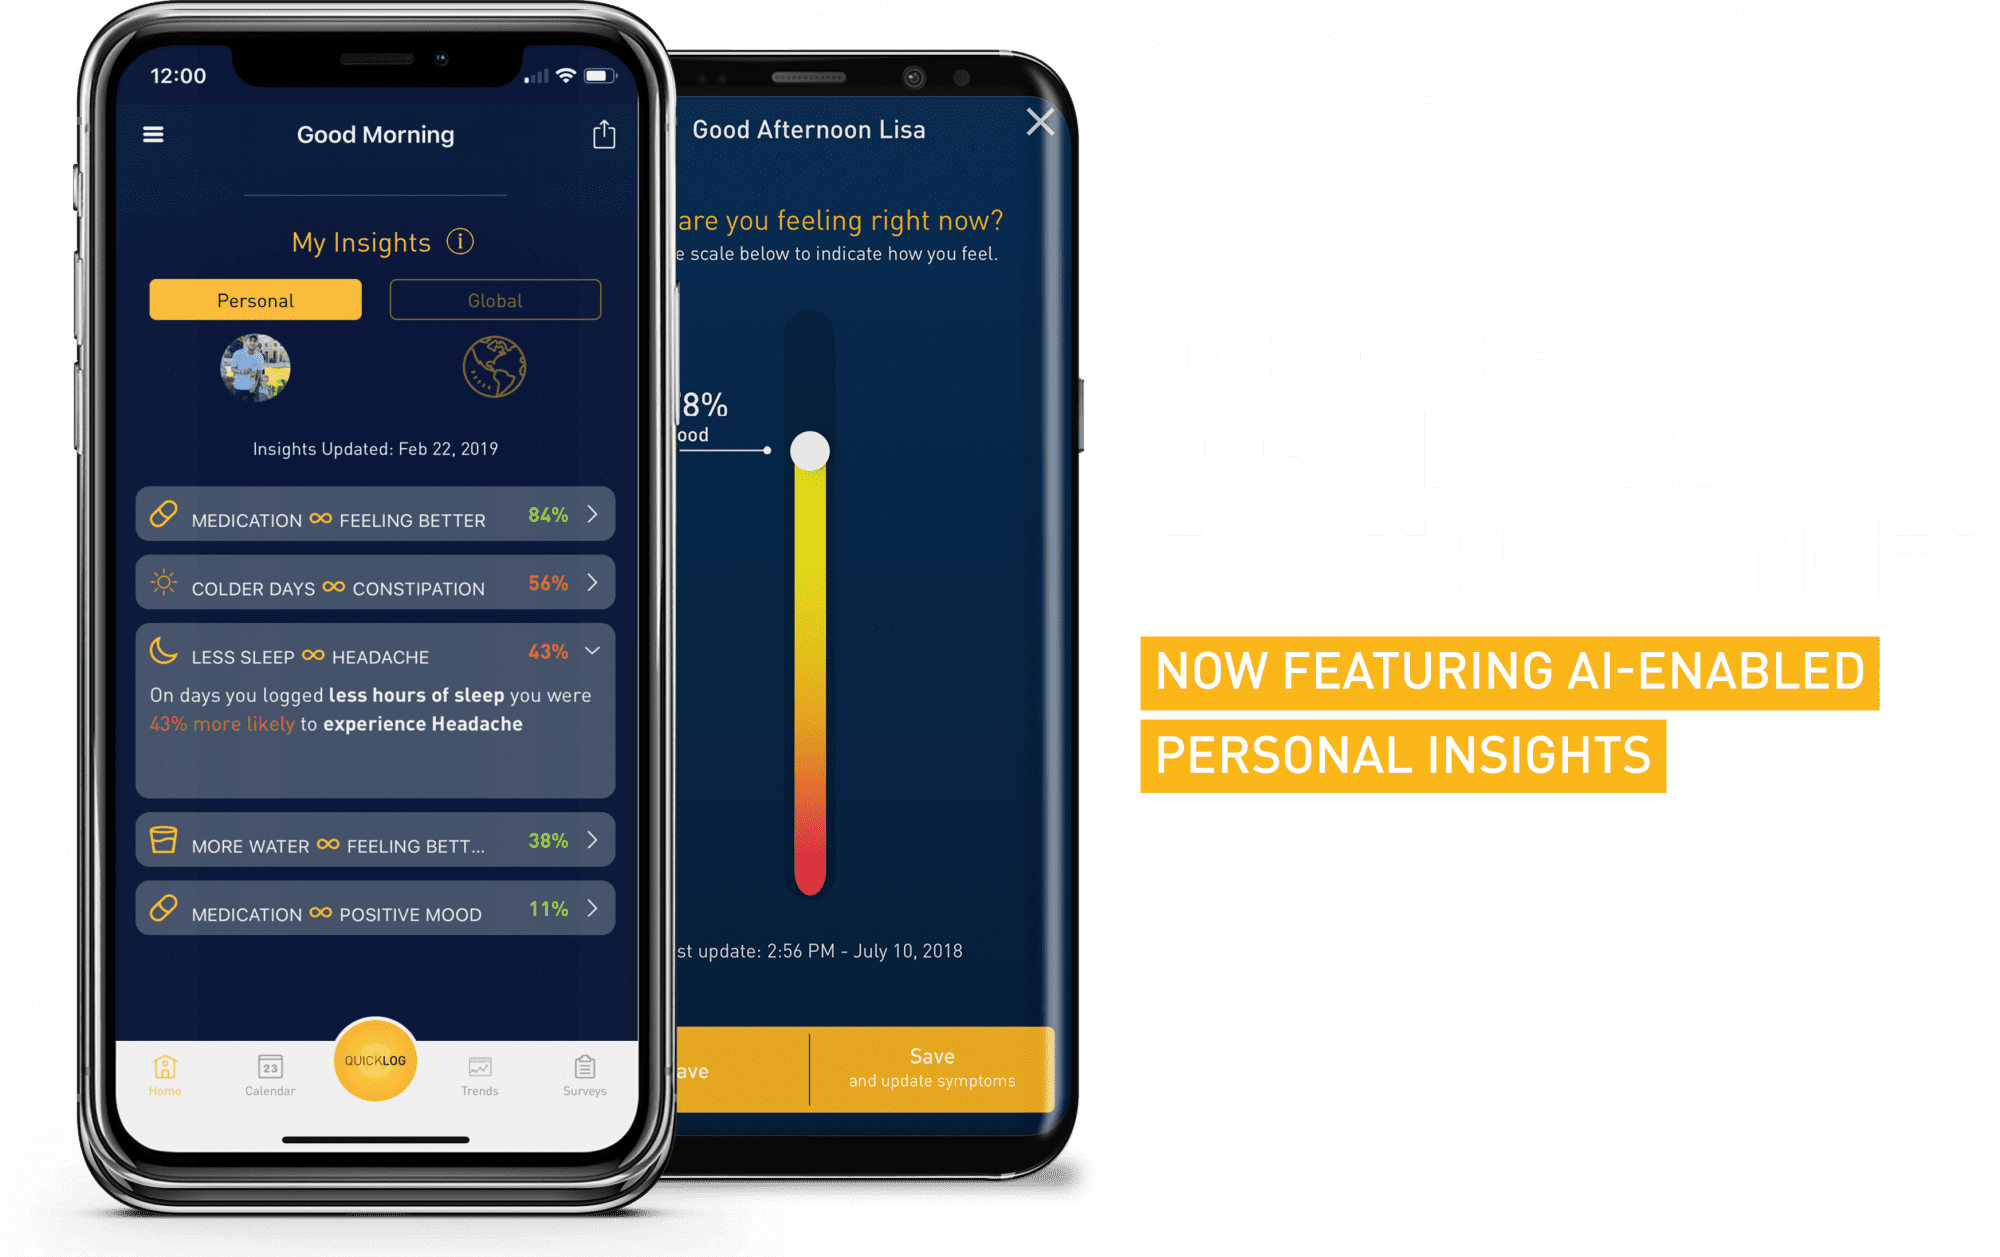 A free mobile app for people fighting cancer